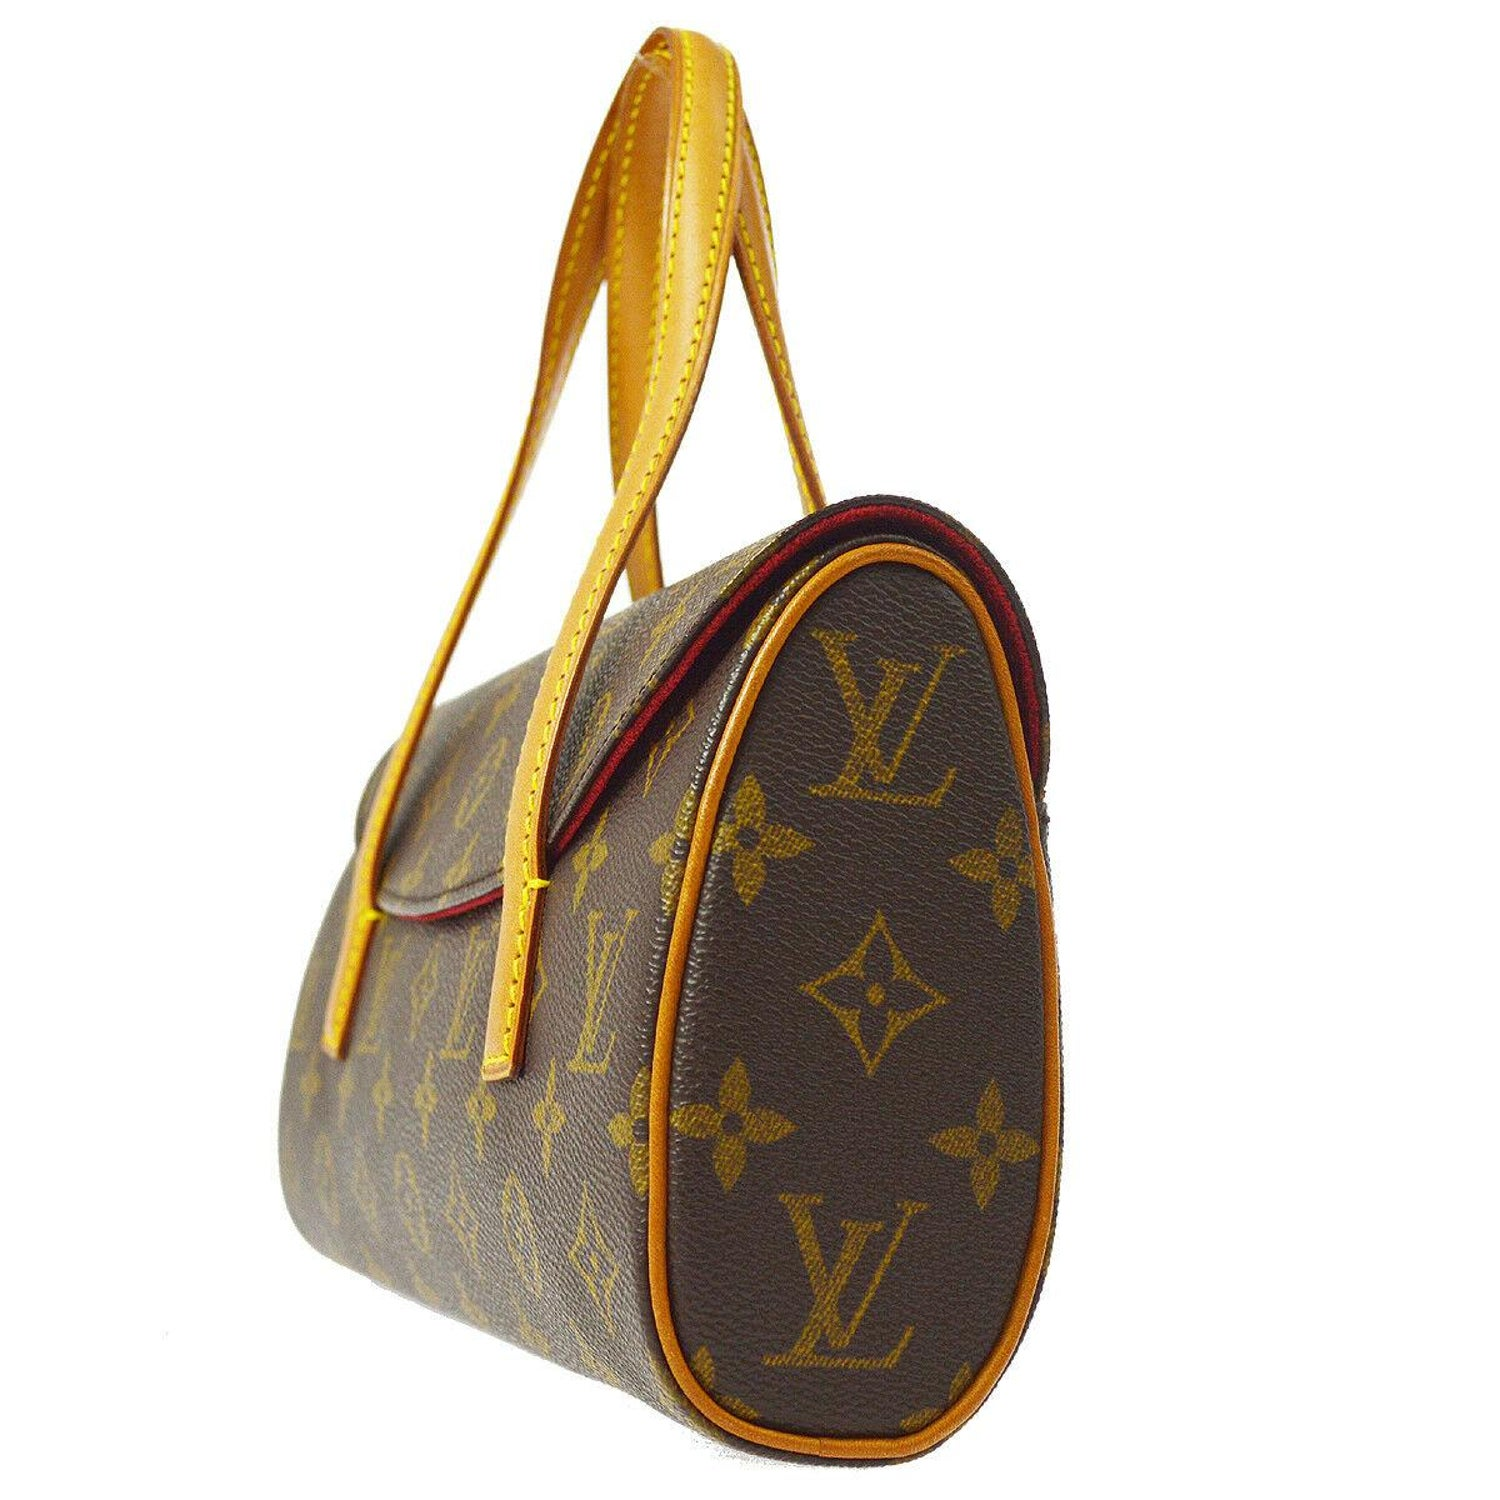 f90b7dd35983 Louis Vuitton Monogram Brown Top Handle Satchel Kelly Style Evening Flap Bag  For Sale at 1stdibs